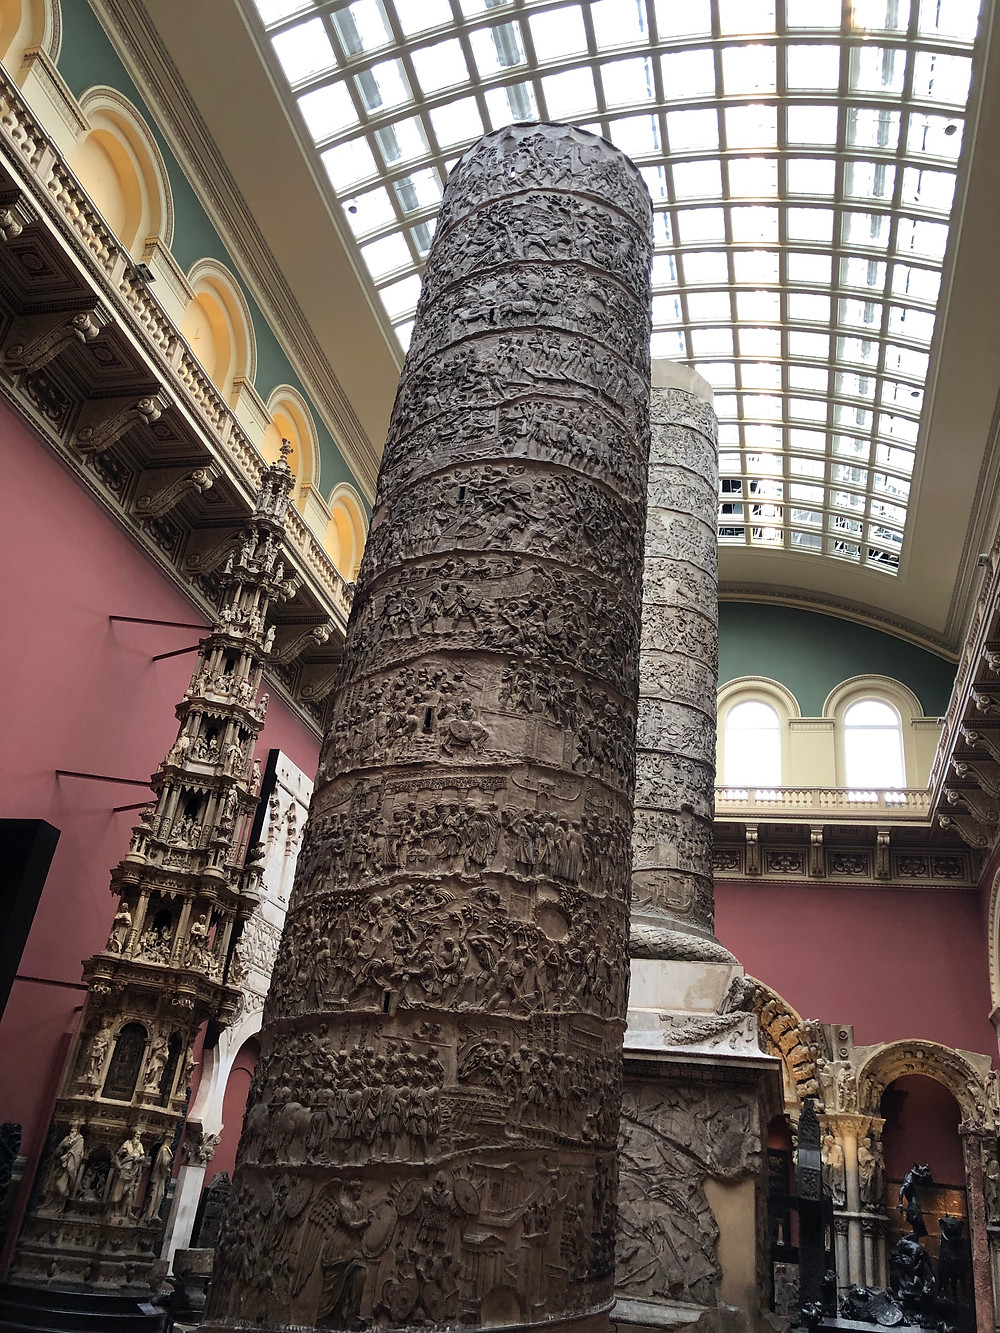 Trajan's Column in the Cast Courts.